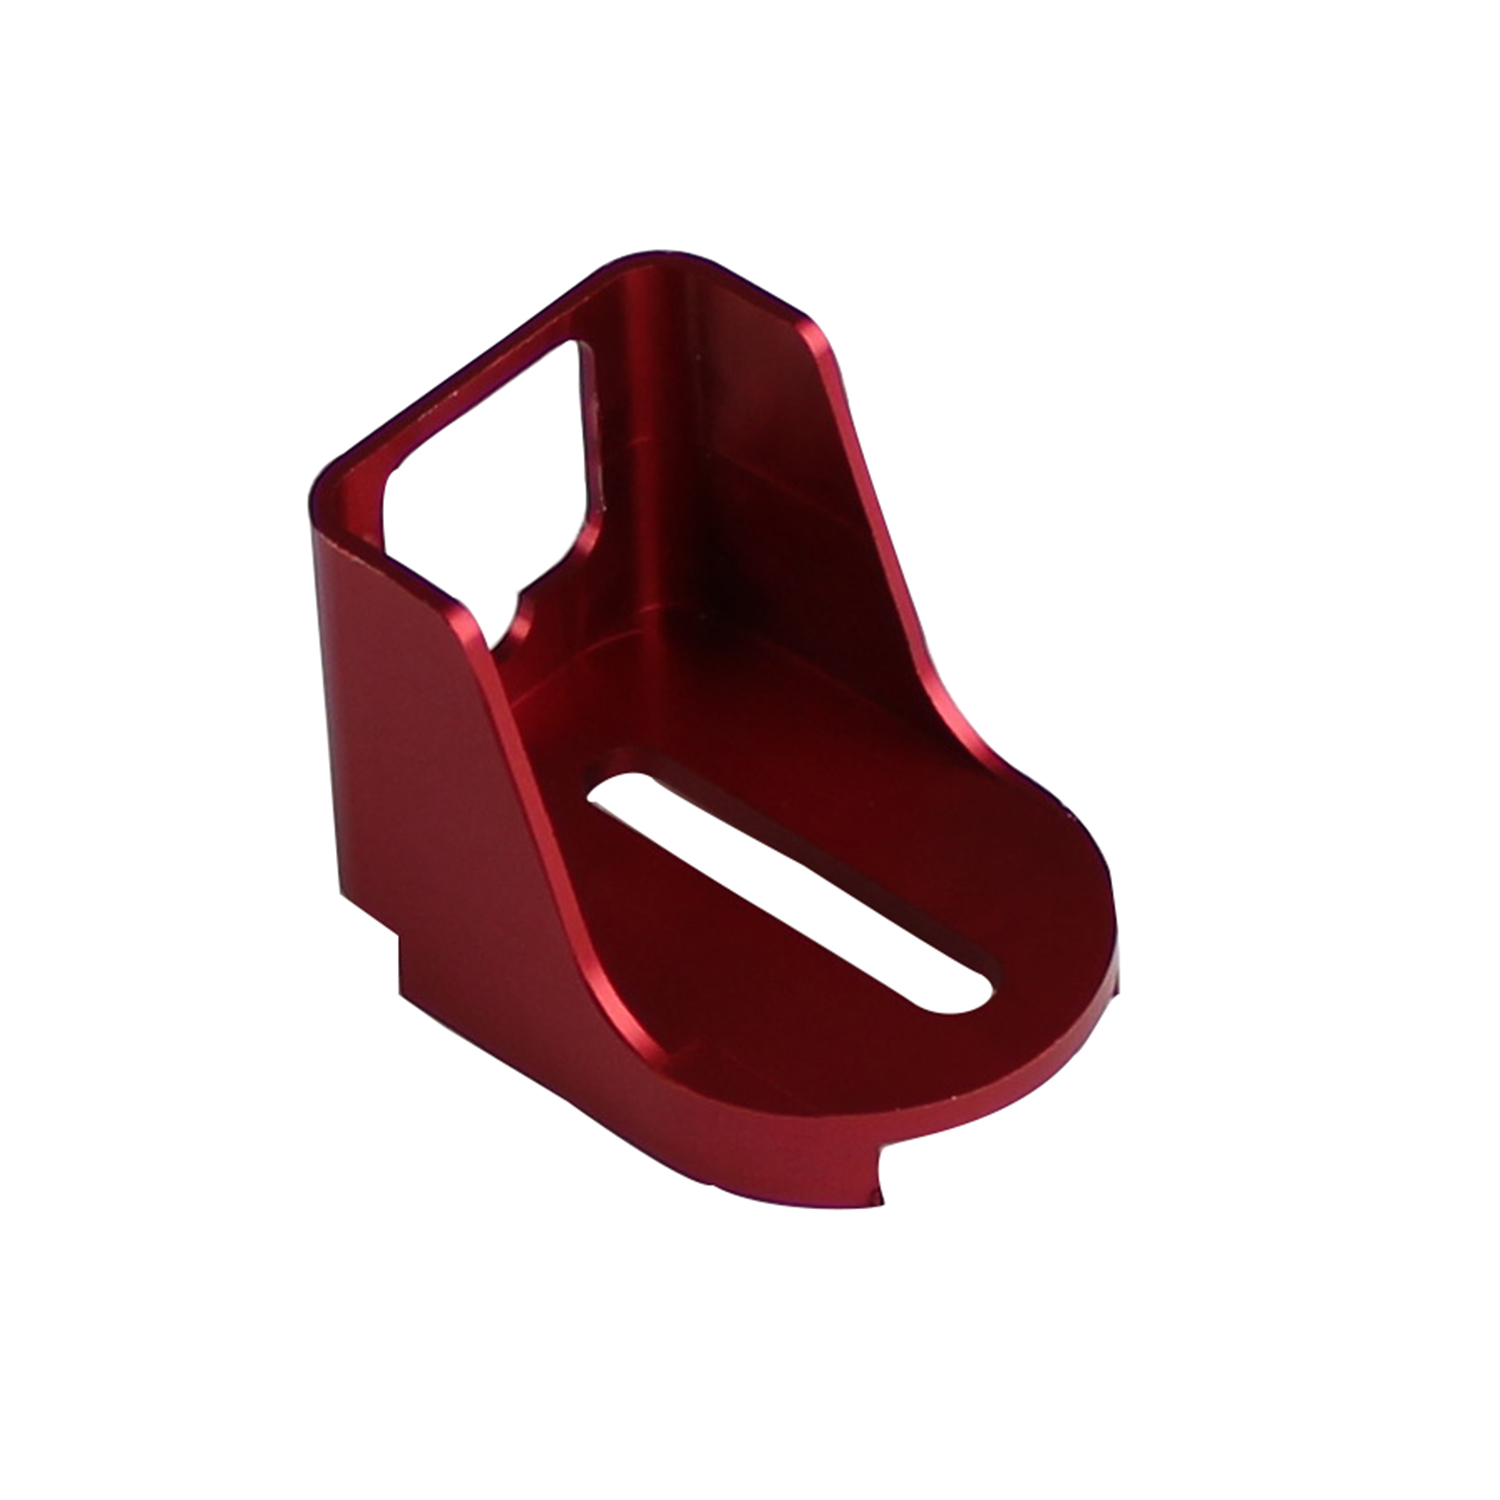 PRP, GM Trans Detent Cable Bracket, TH200/700R4, TH350, Red